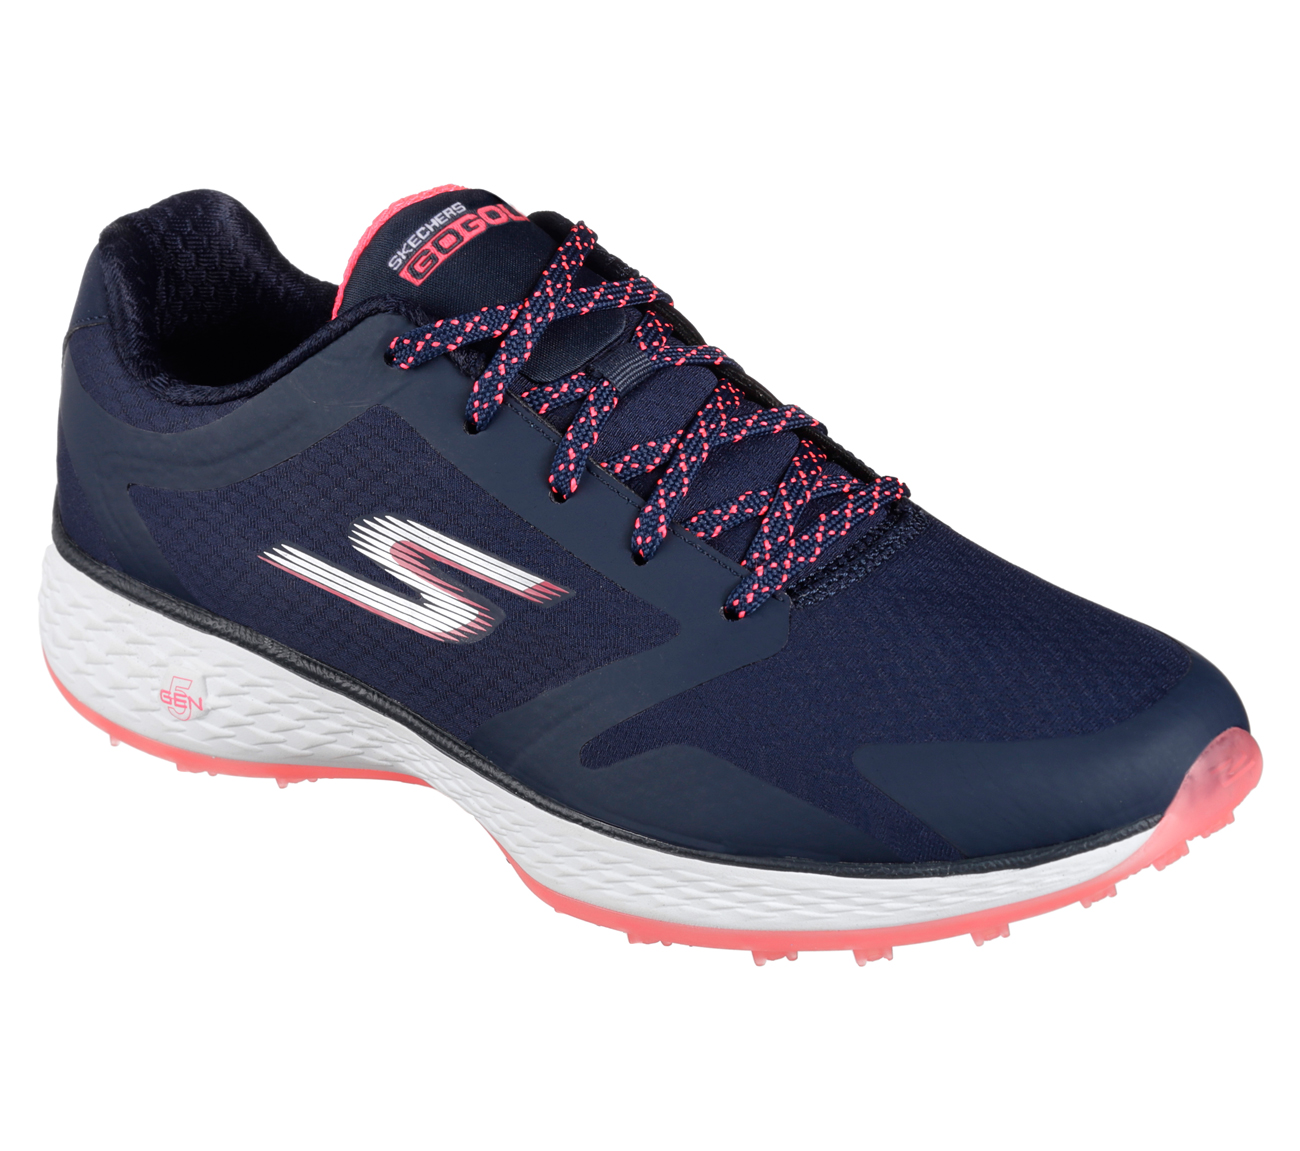 Sketchers Women's Go Golf Birdie Golf Shoe - Navy/Pink